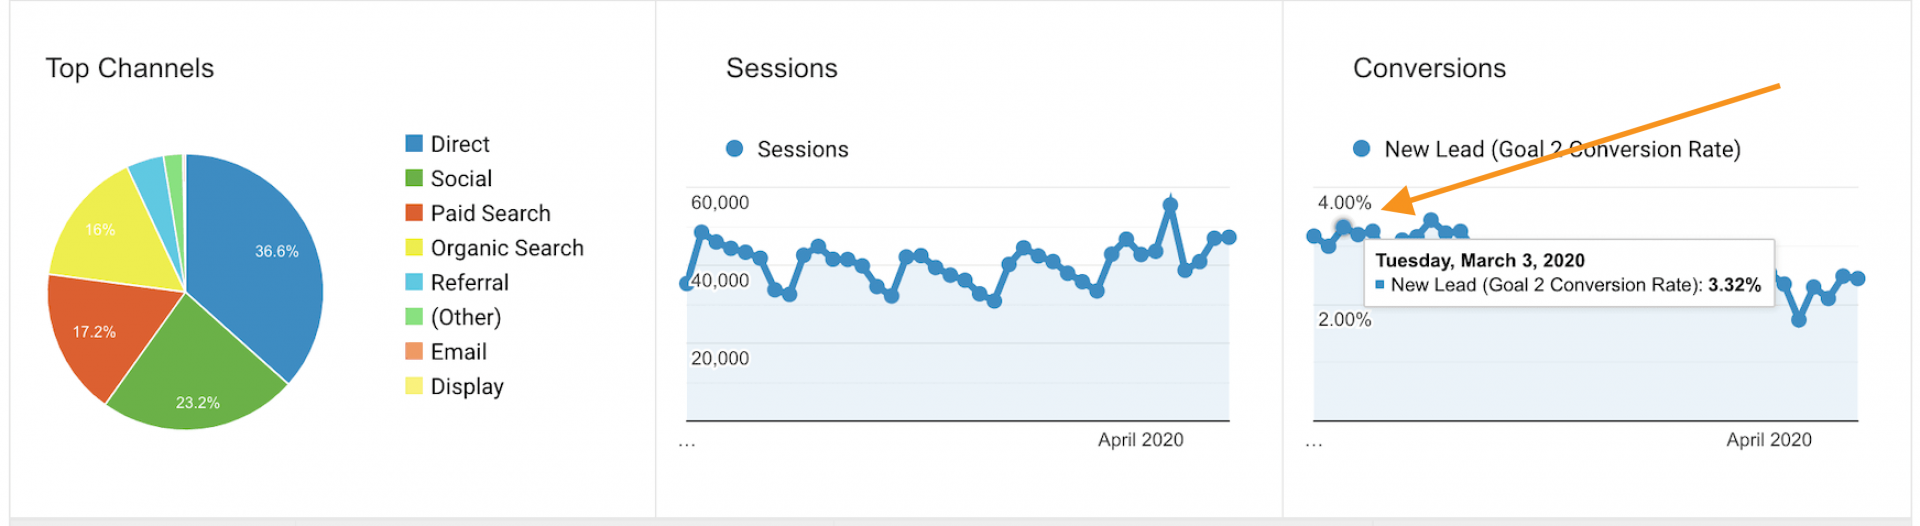 Covid 19 conversion rate in March